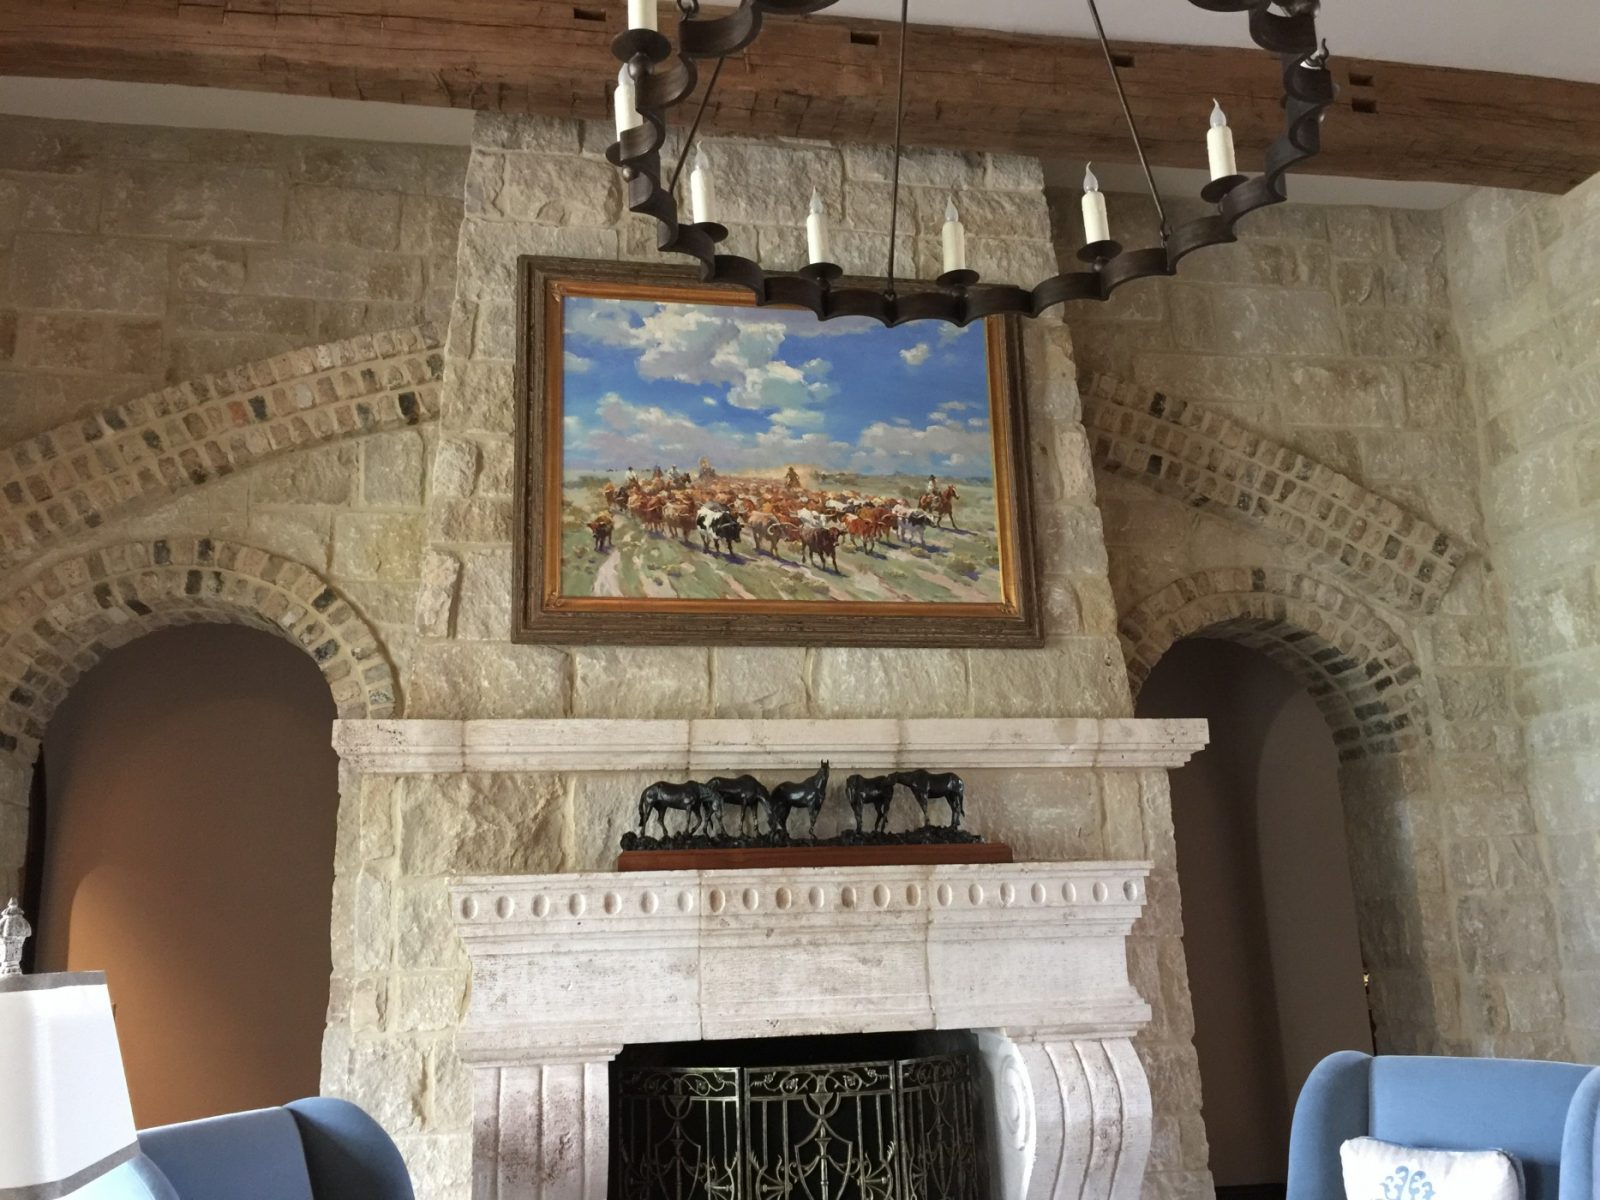 Xiang Zhang painting hanging over mantle